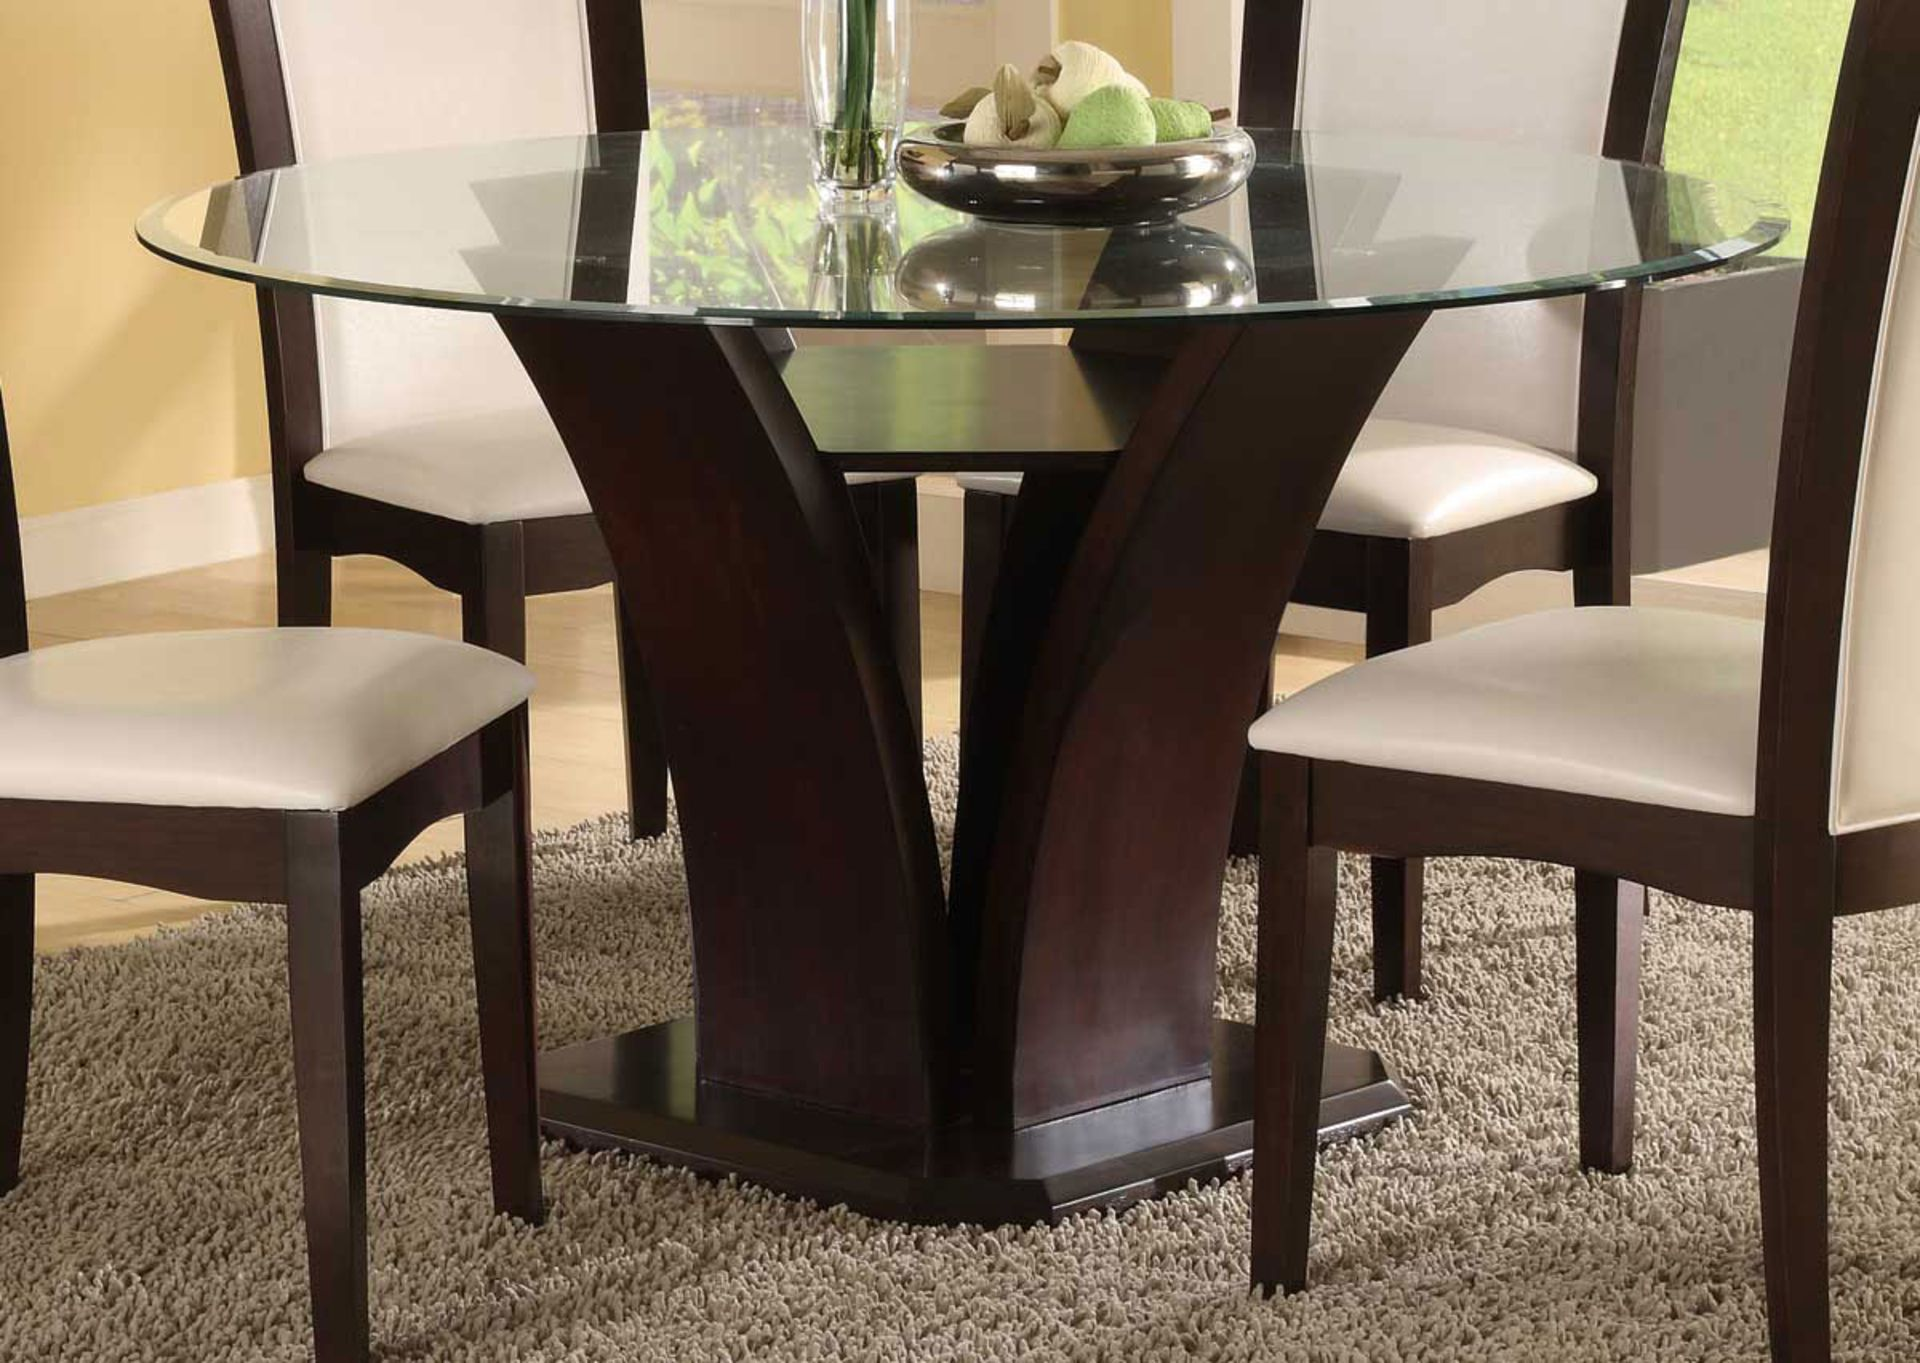 Modern Round Dining Table a New Family Tradition MidCityEast